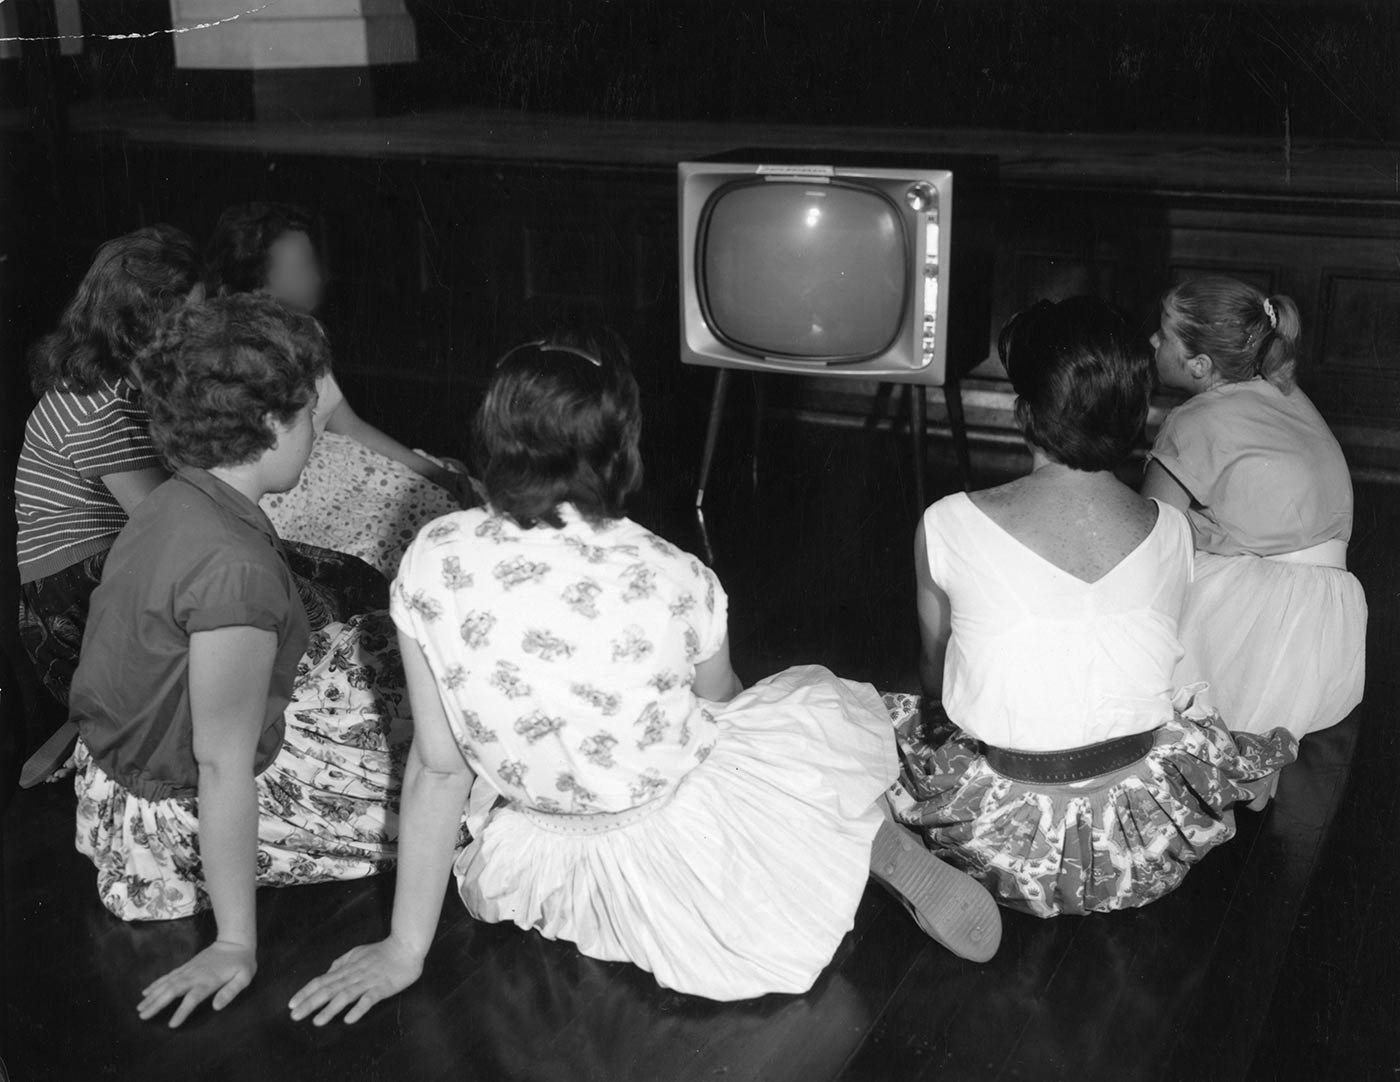 Black and white image showing six teenage girls sitting on the floor, looking at a television. The girls have their backs to the camera. - click to view larger image